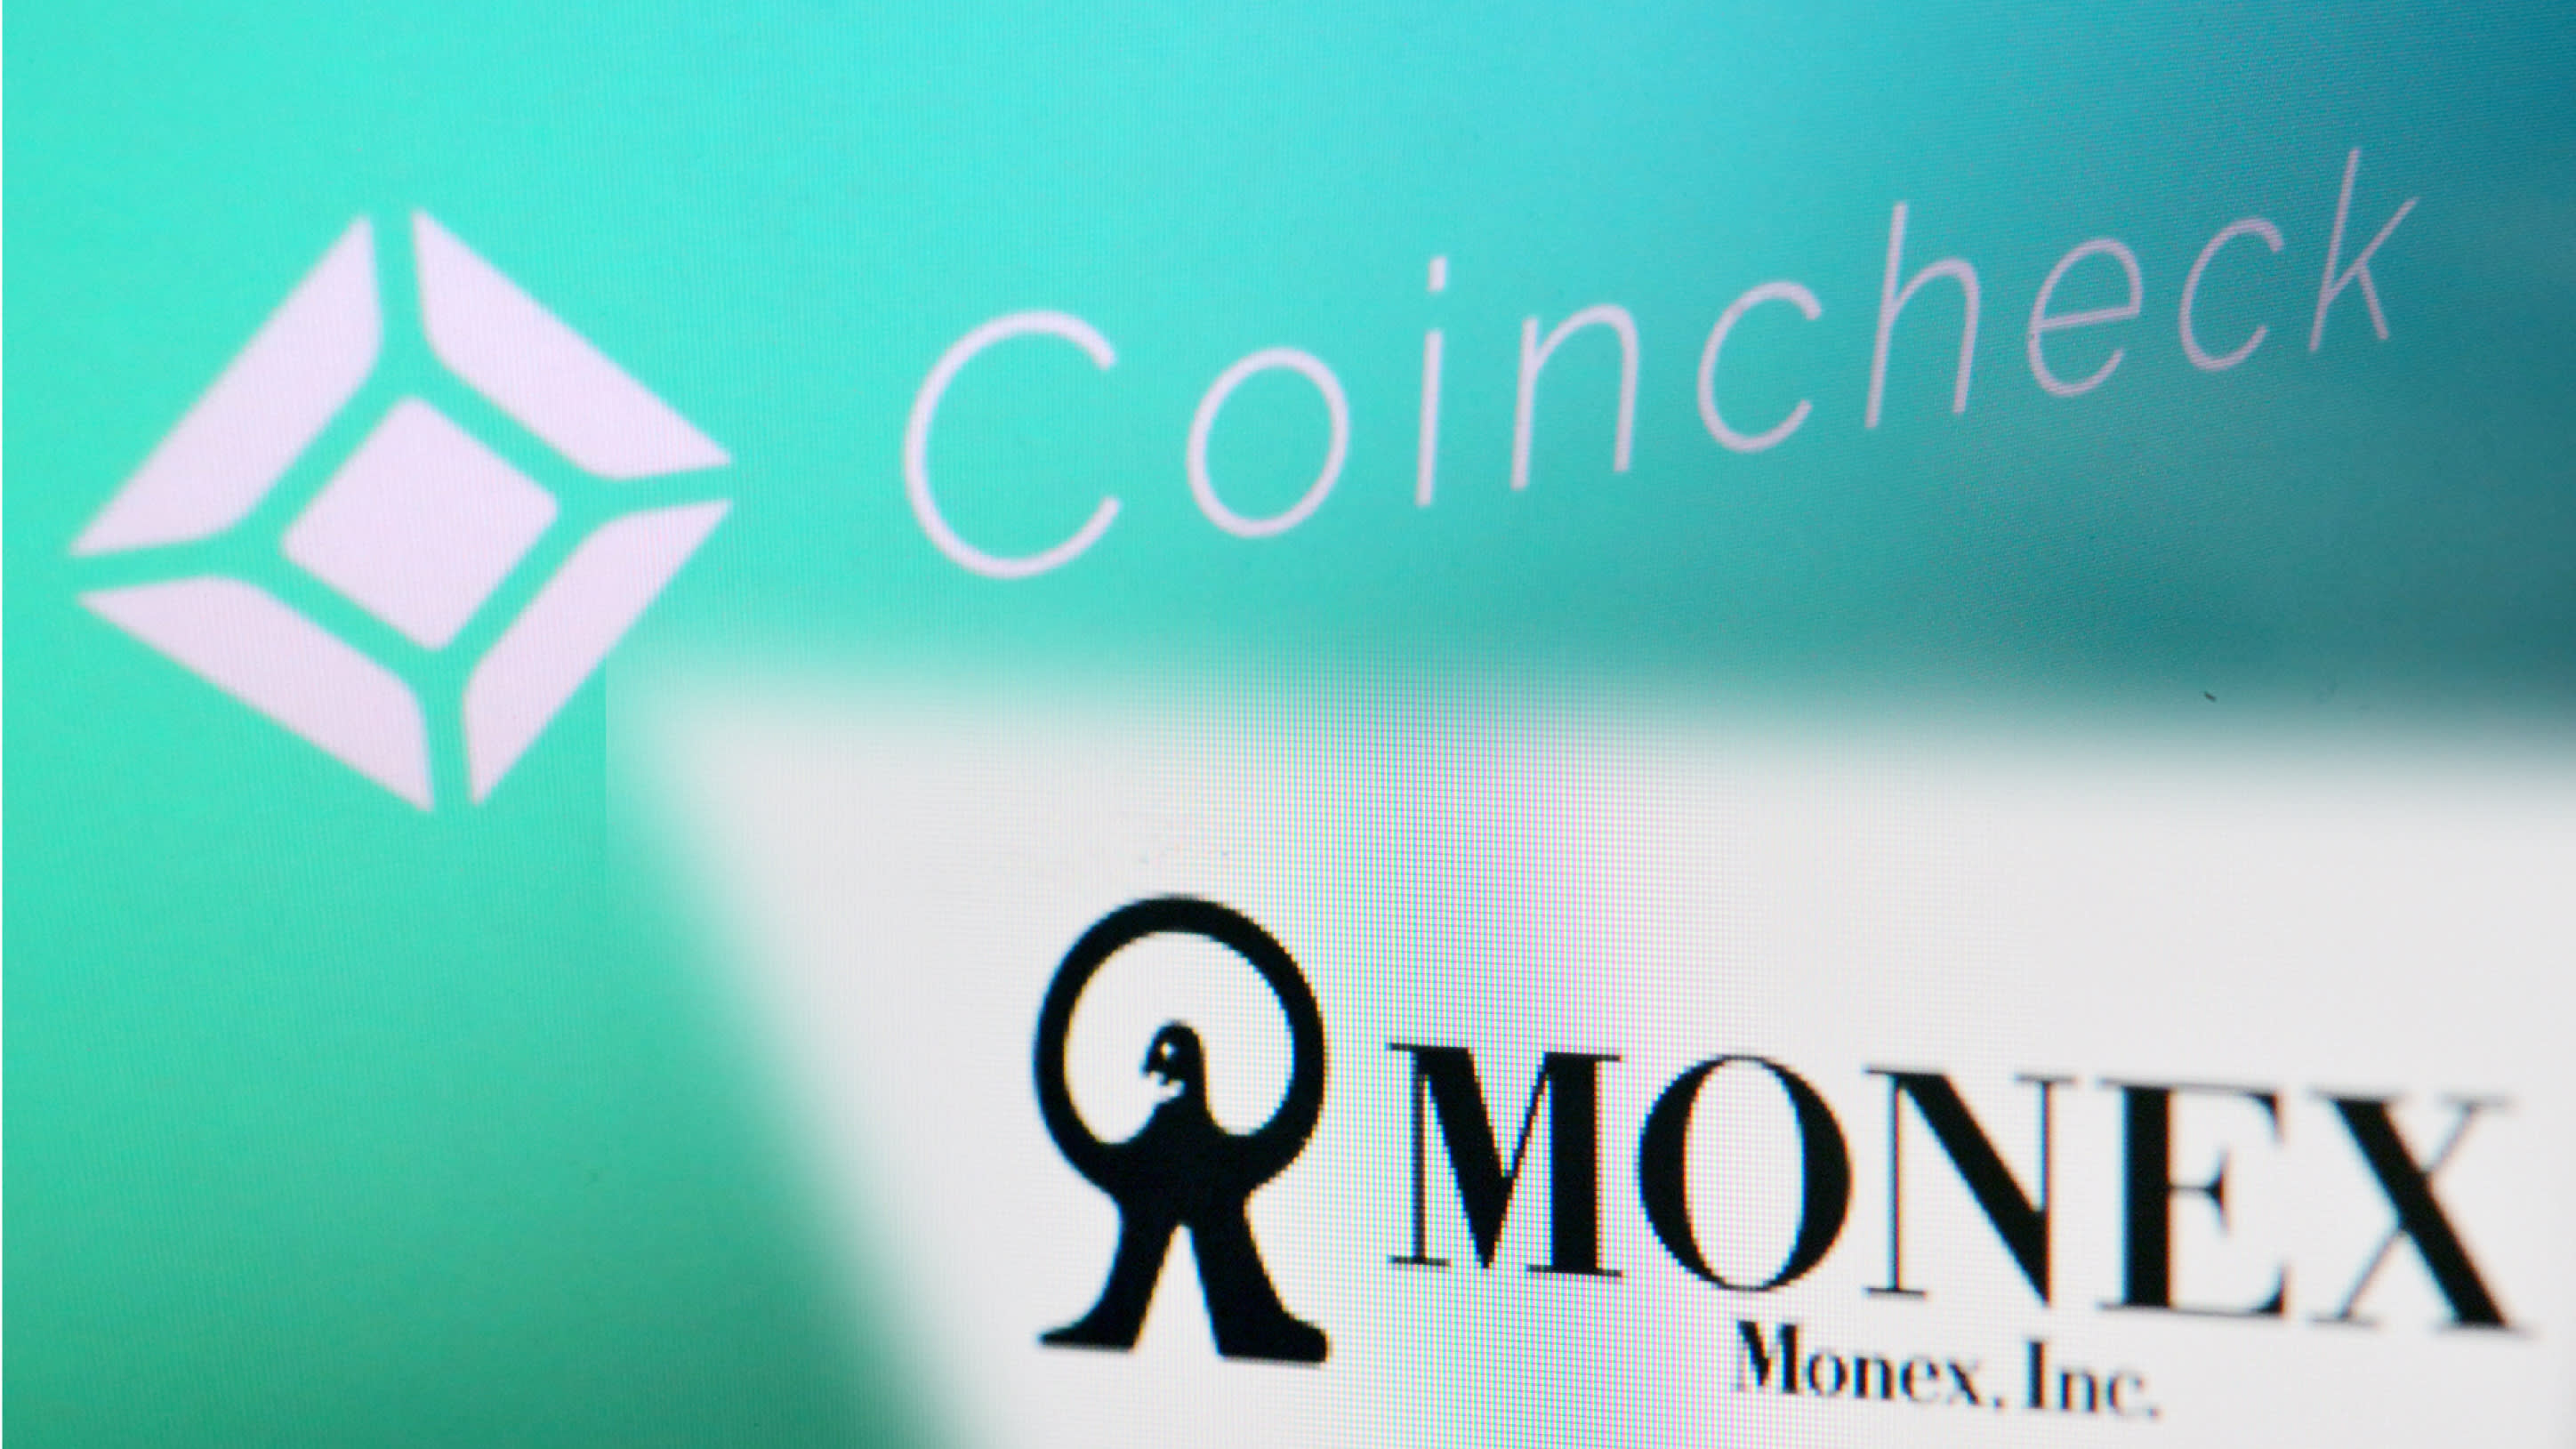 Monex Group announces it will buy Coincheck for $33mn - Nikkei Asian ...